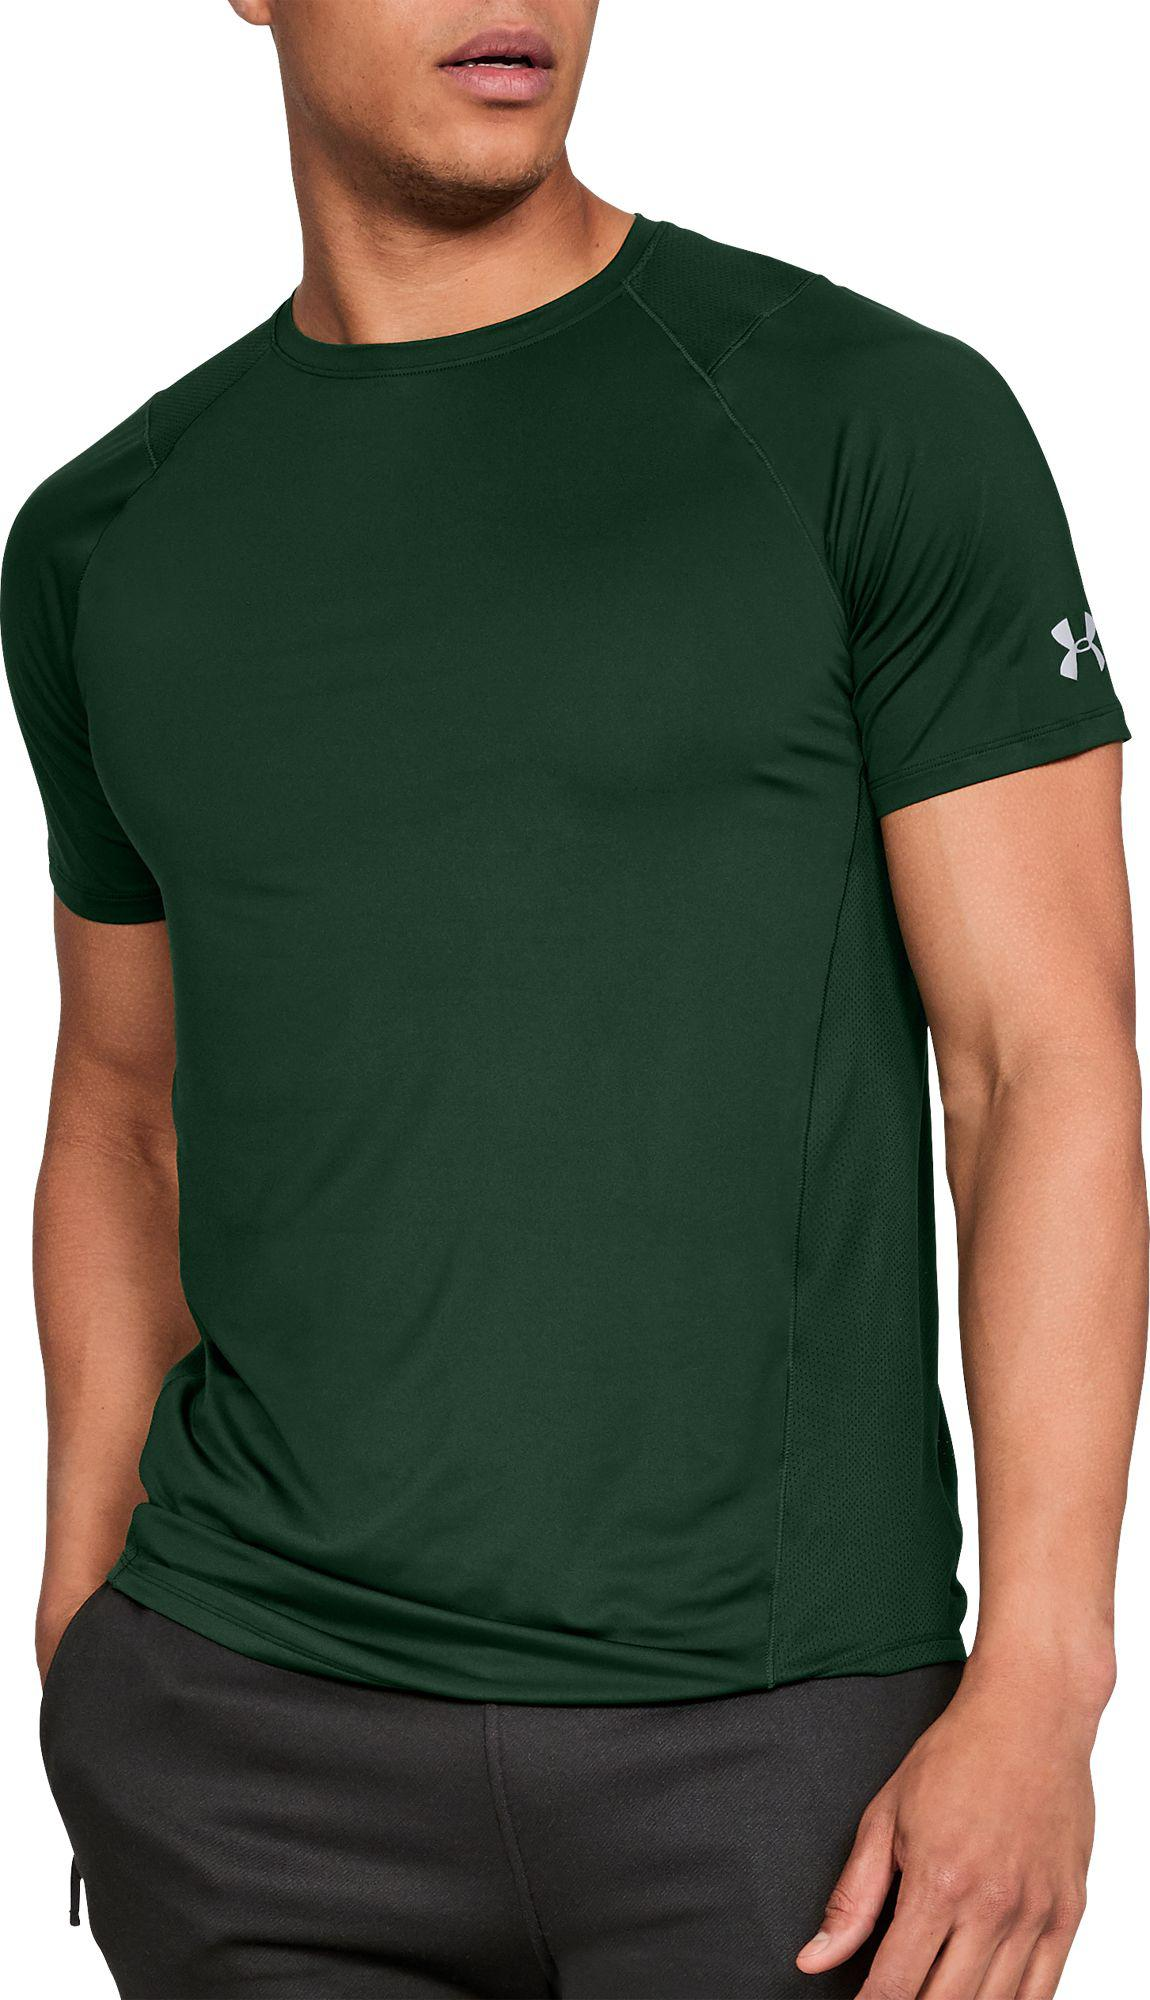 9c655638 Under Armour Mk-1 T-shirt in Green for Men - Lyst